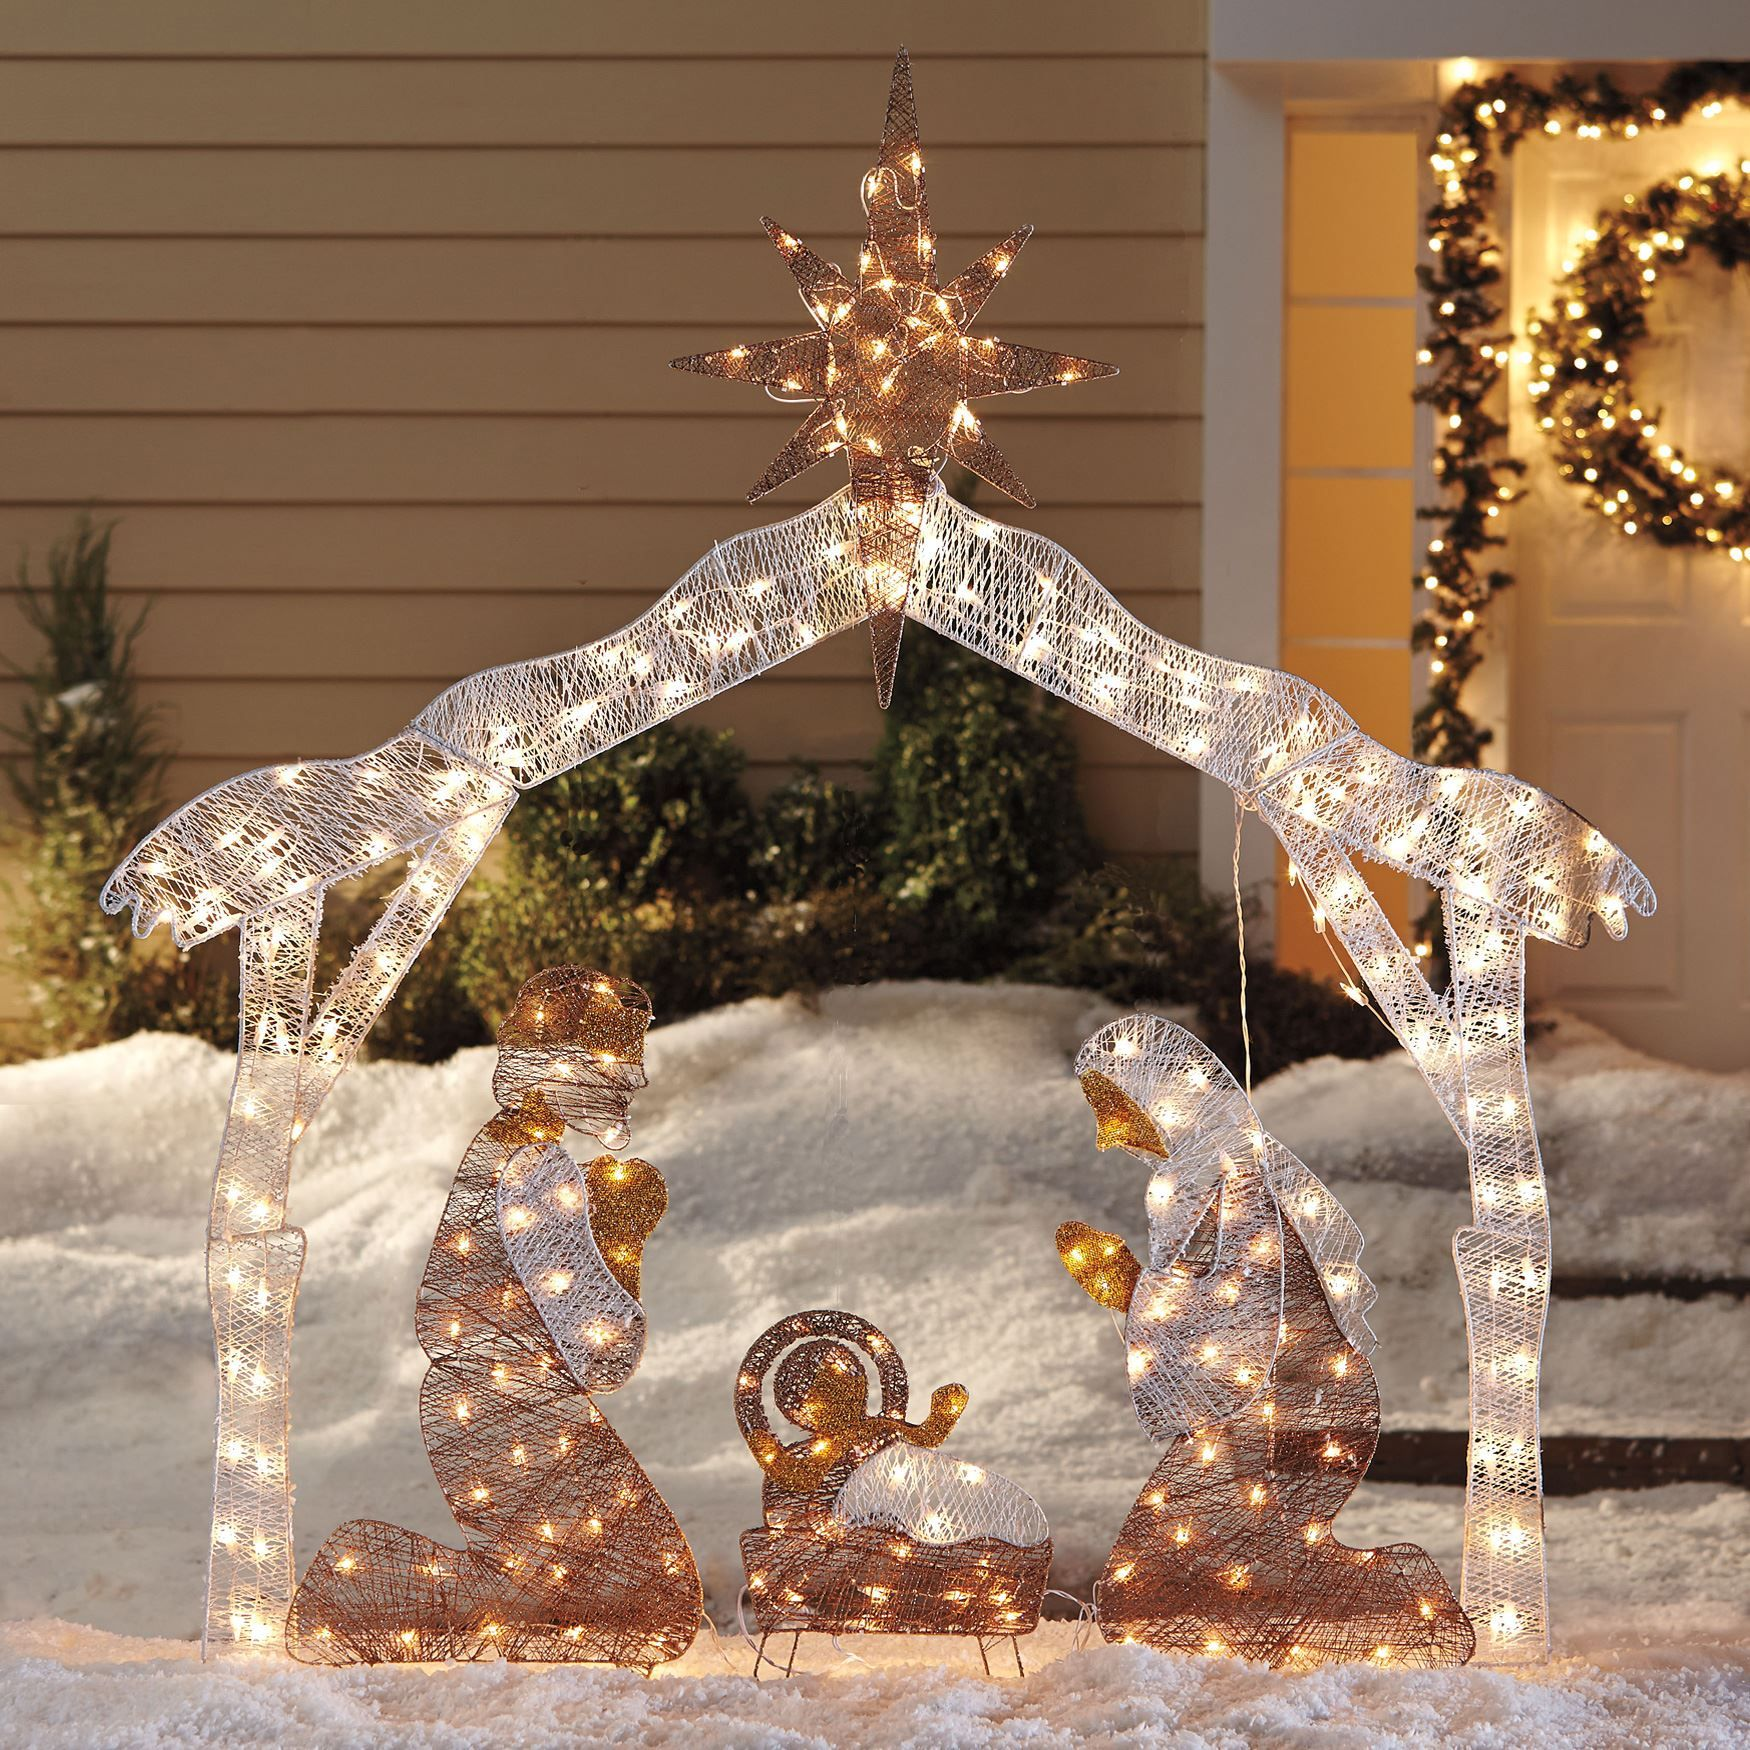 Our Stunning Outdoor Nativity Set Expresses The True Joy Of Christmas By  Creating A Stunning Focal